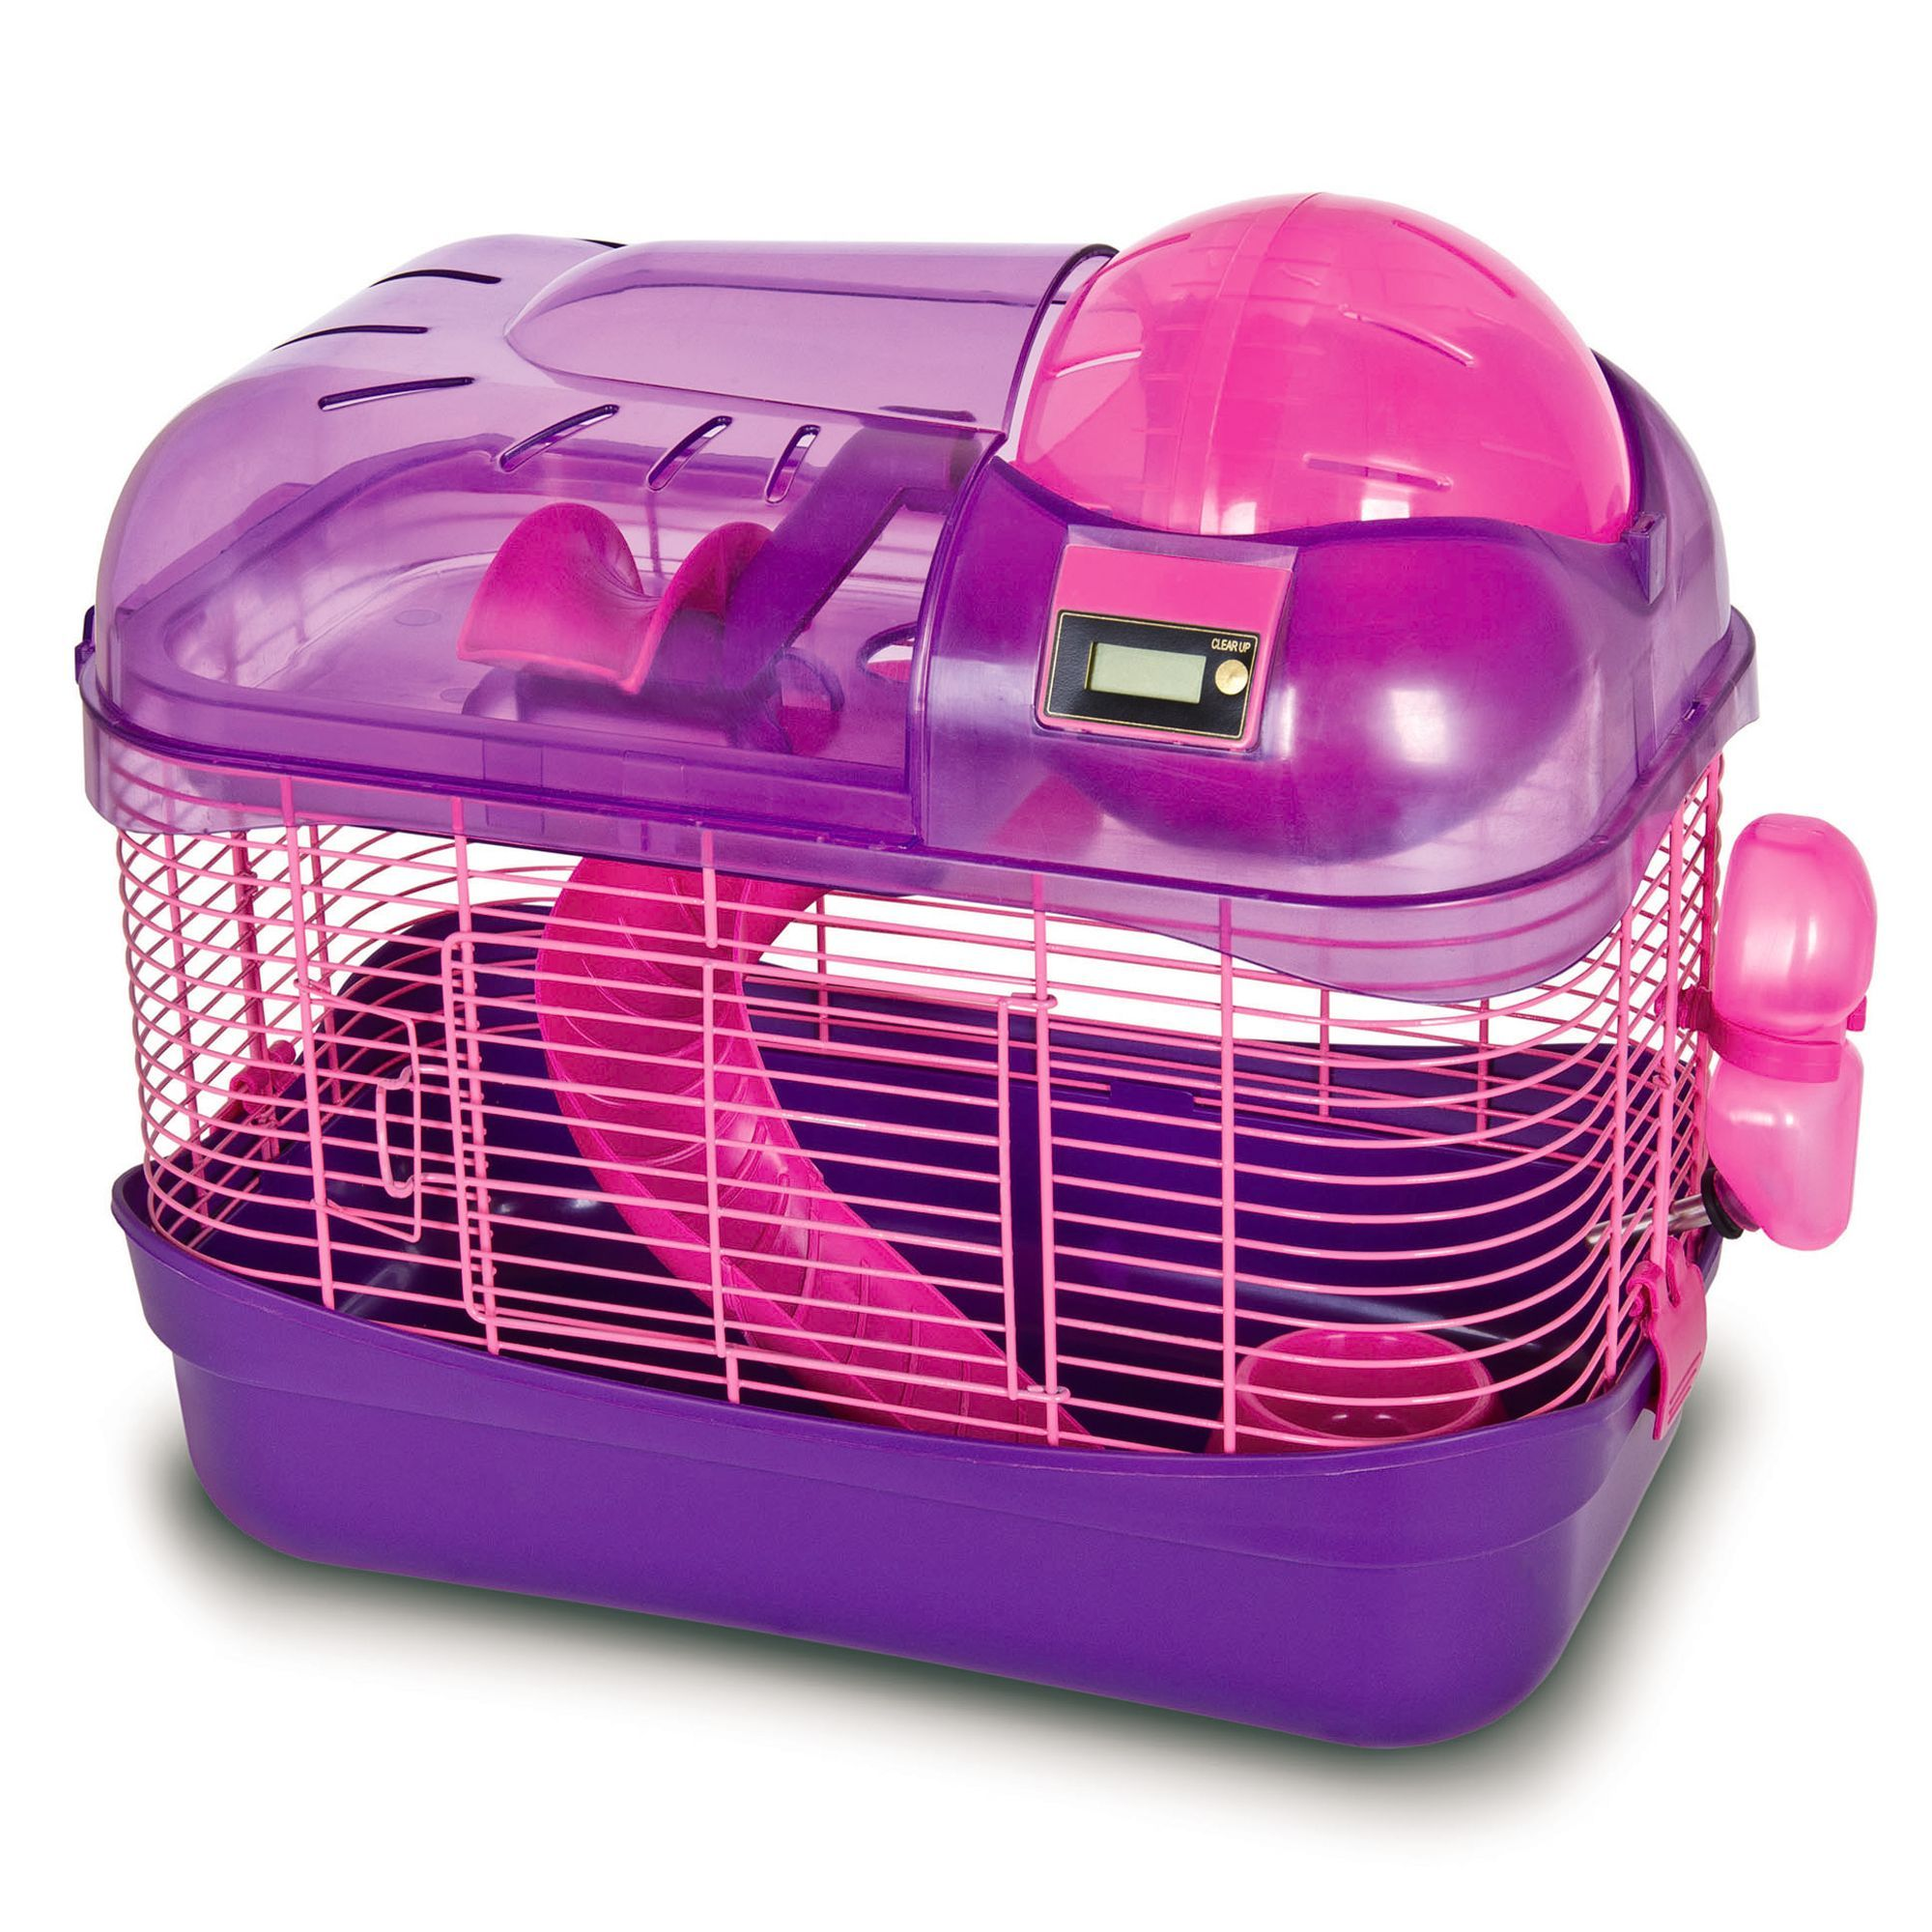 Ware Spin City Health Club Small Pet Habitat Purple Small Pets Hamster Cages Small Animal Cage